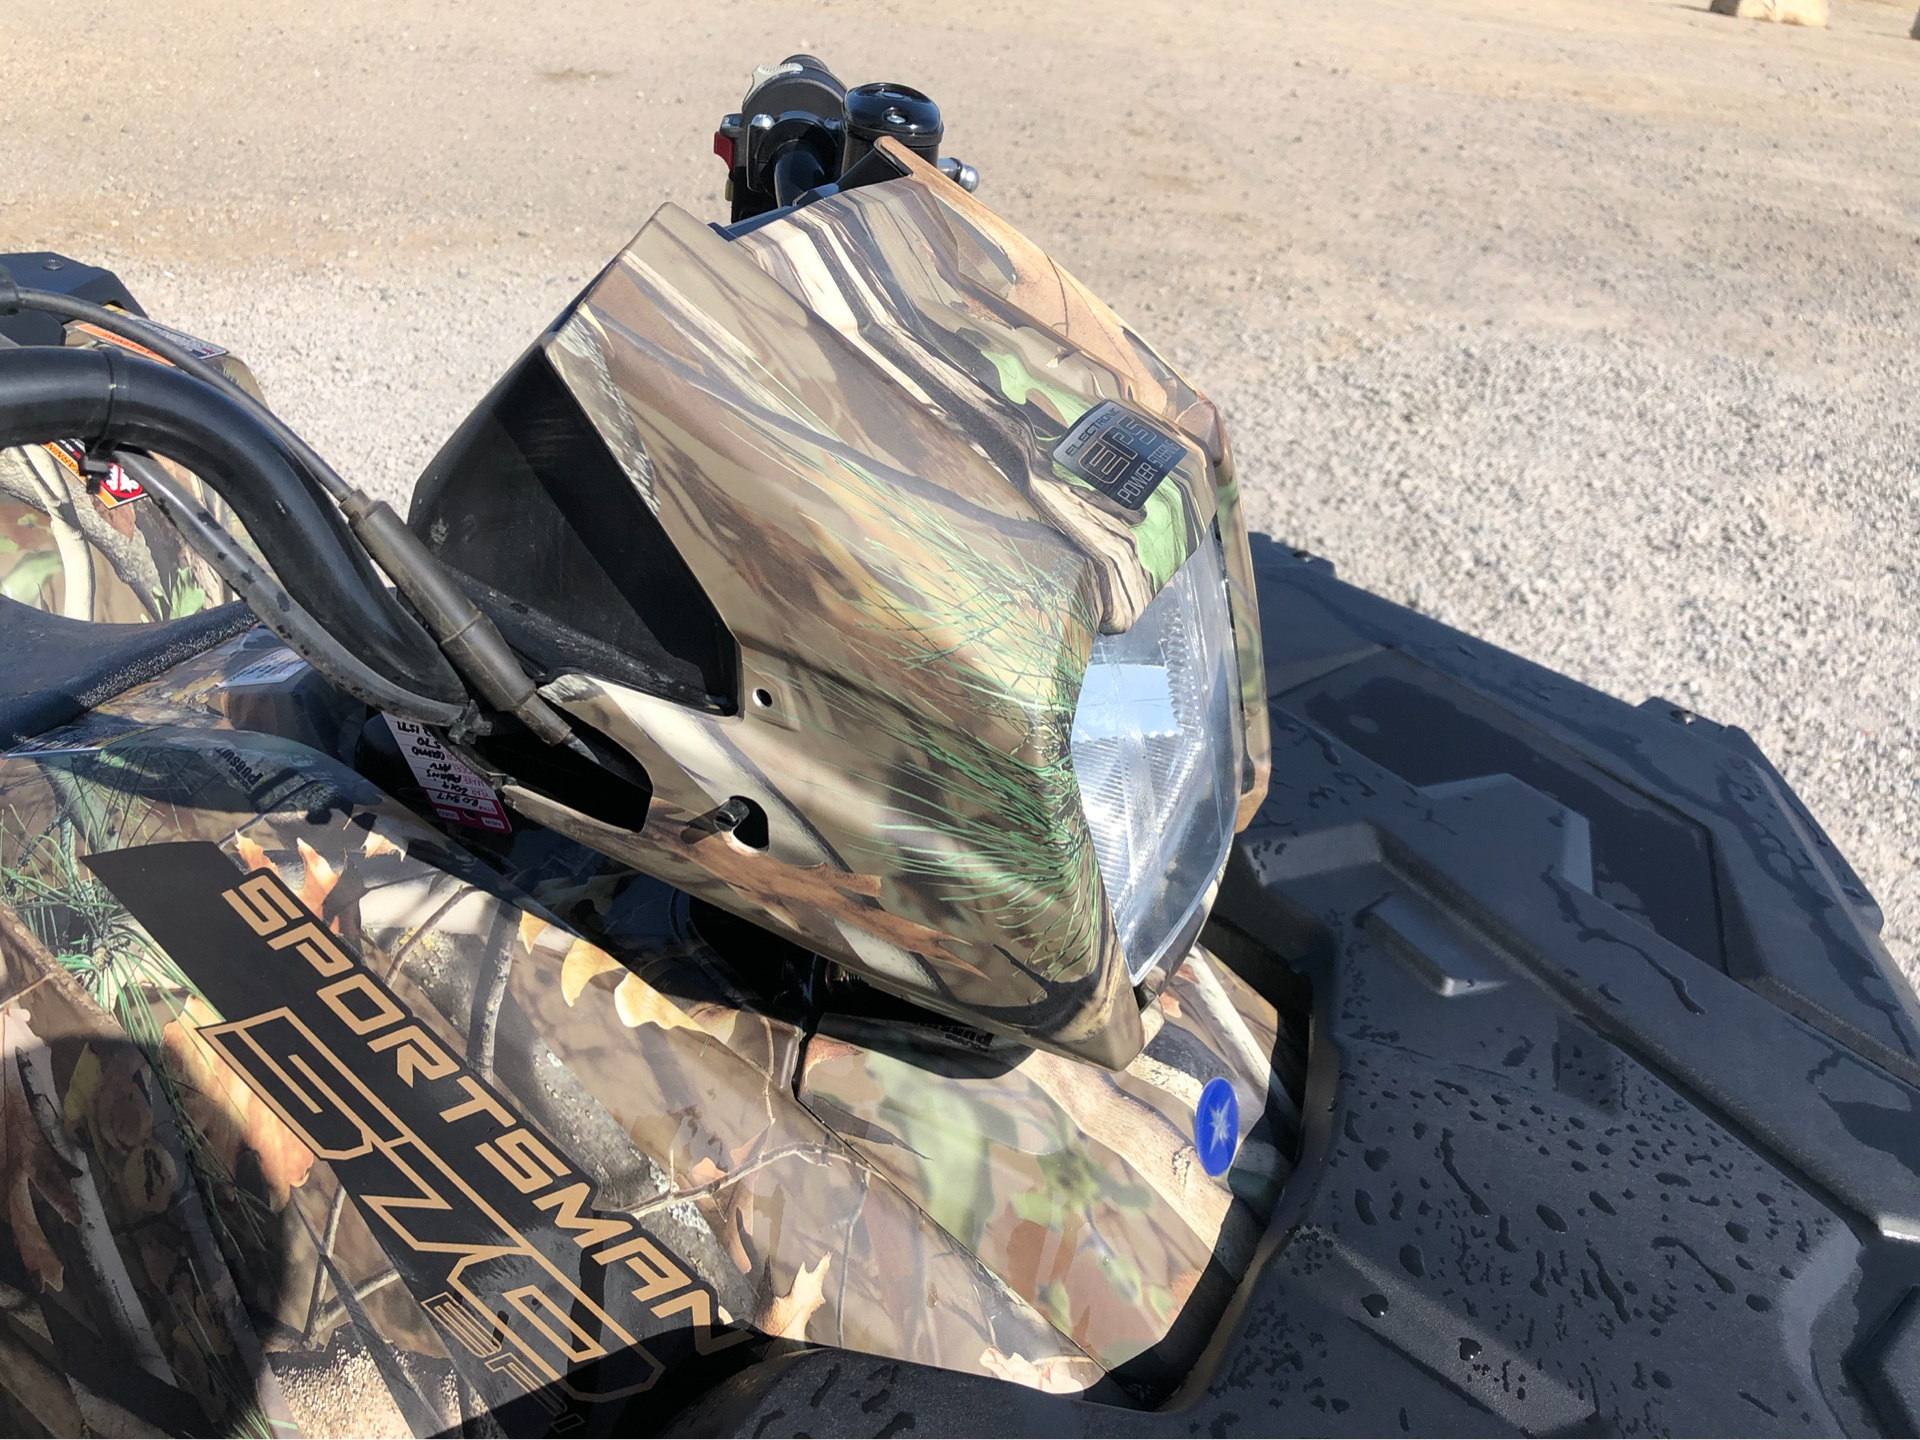 2019 Polaris Sportsman 570 EPS Camo in Attica, Indiana - Photo 7